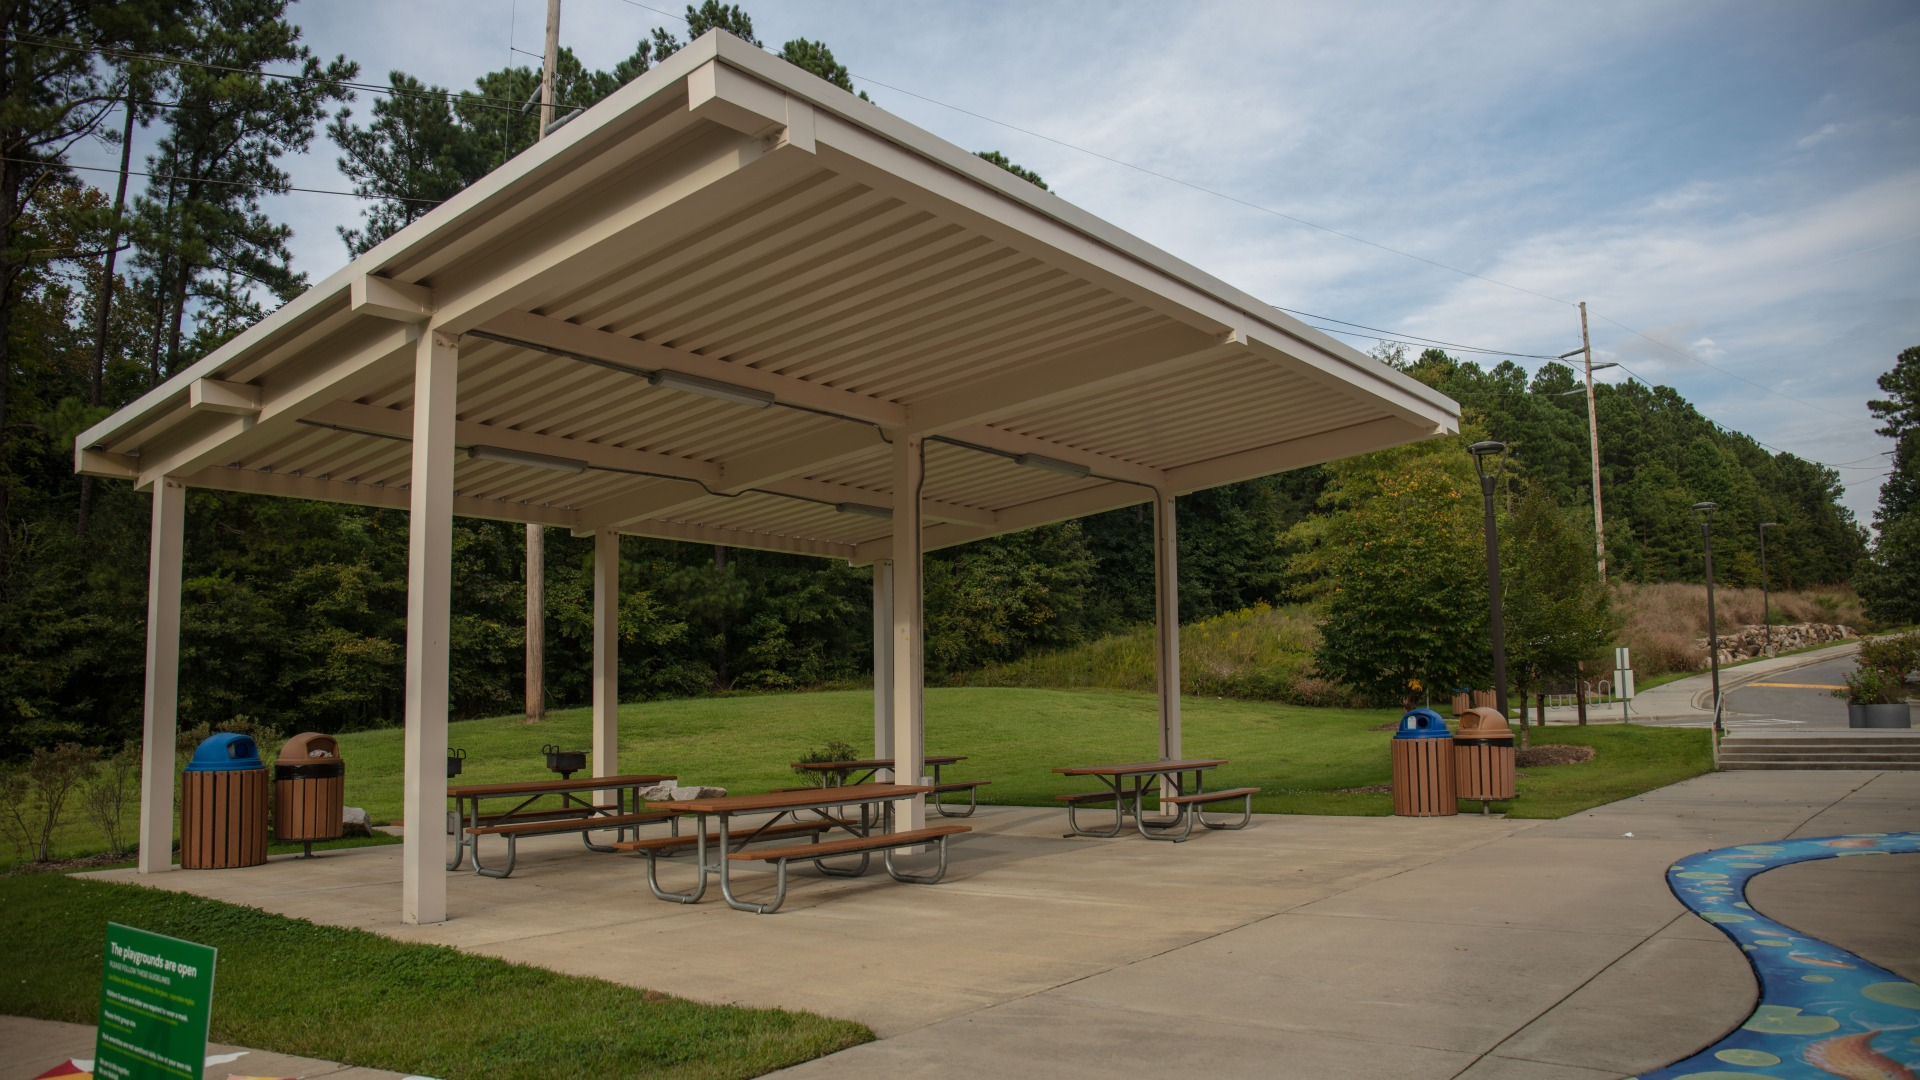 A medium size open-air picnic shelter with several picnic tables